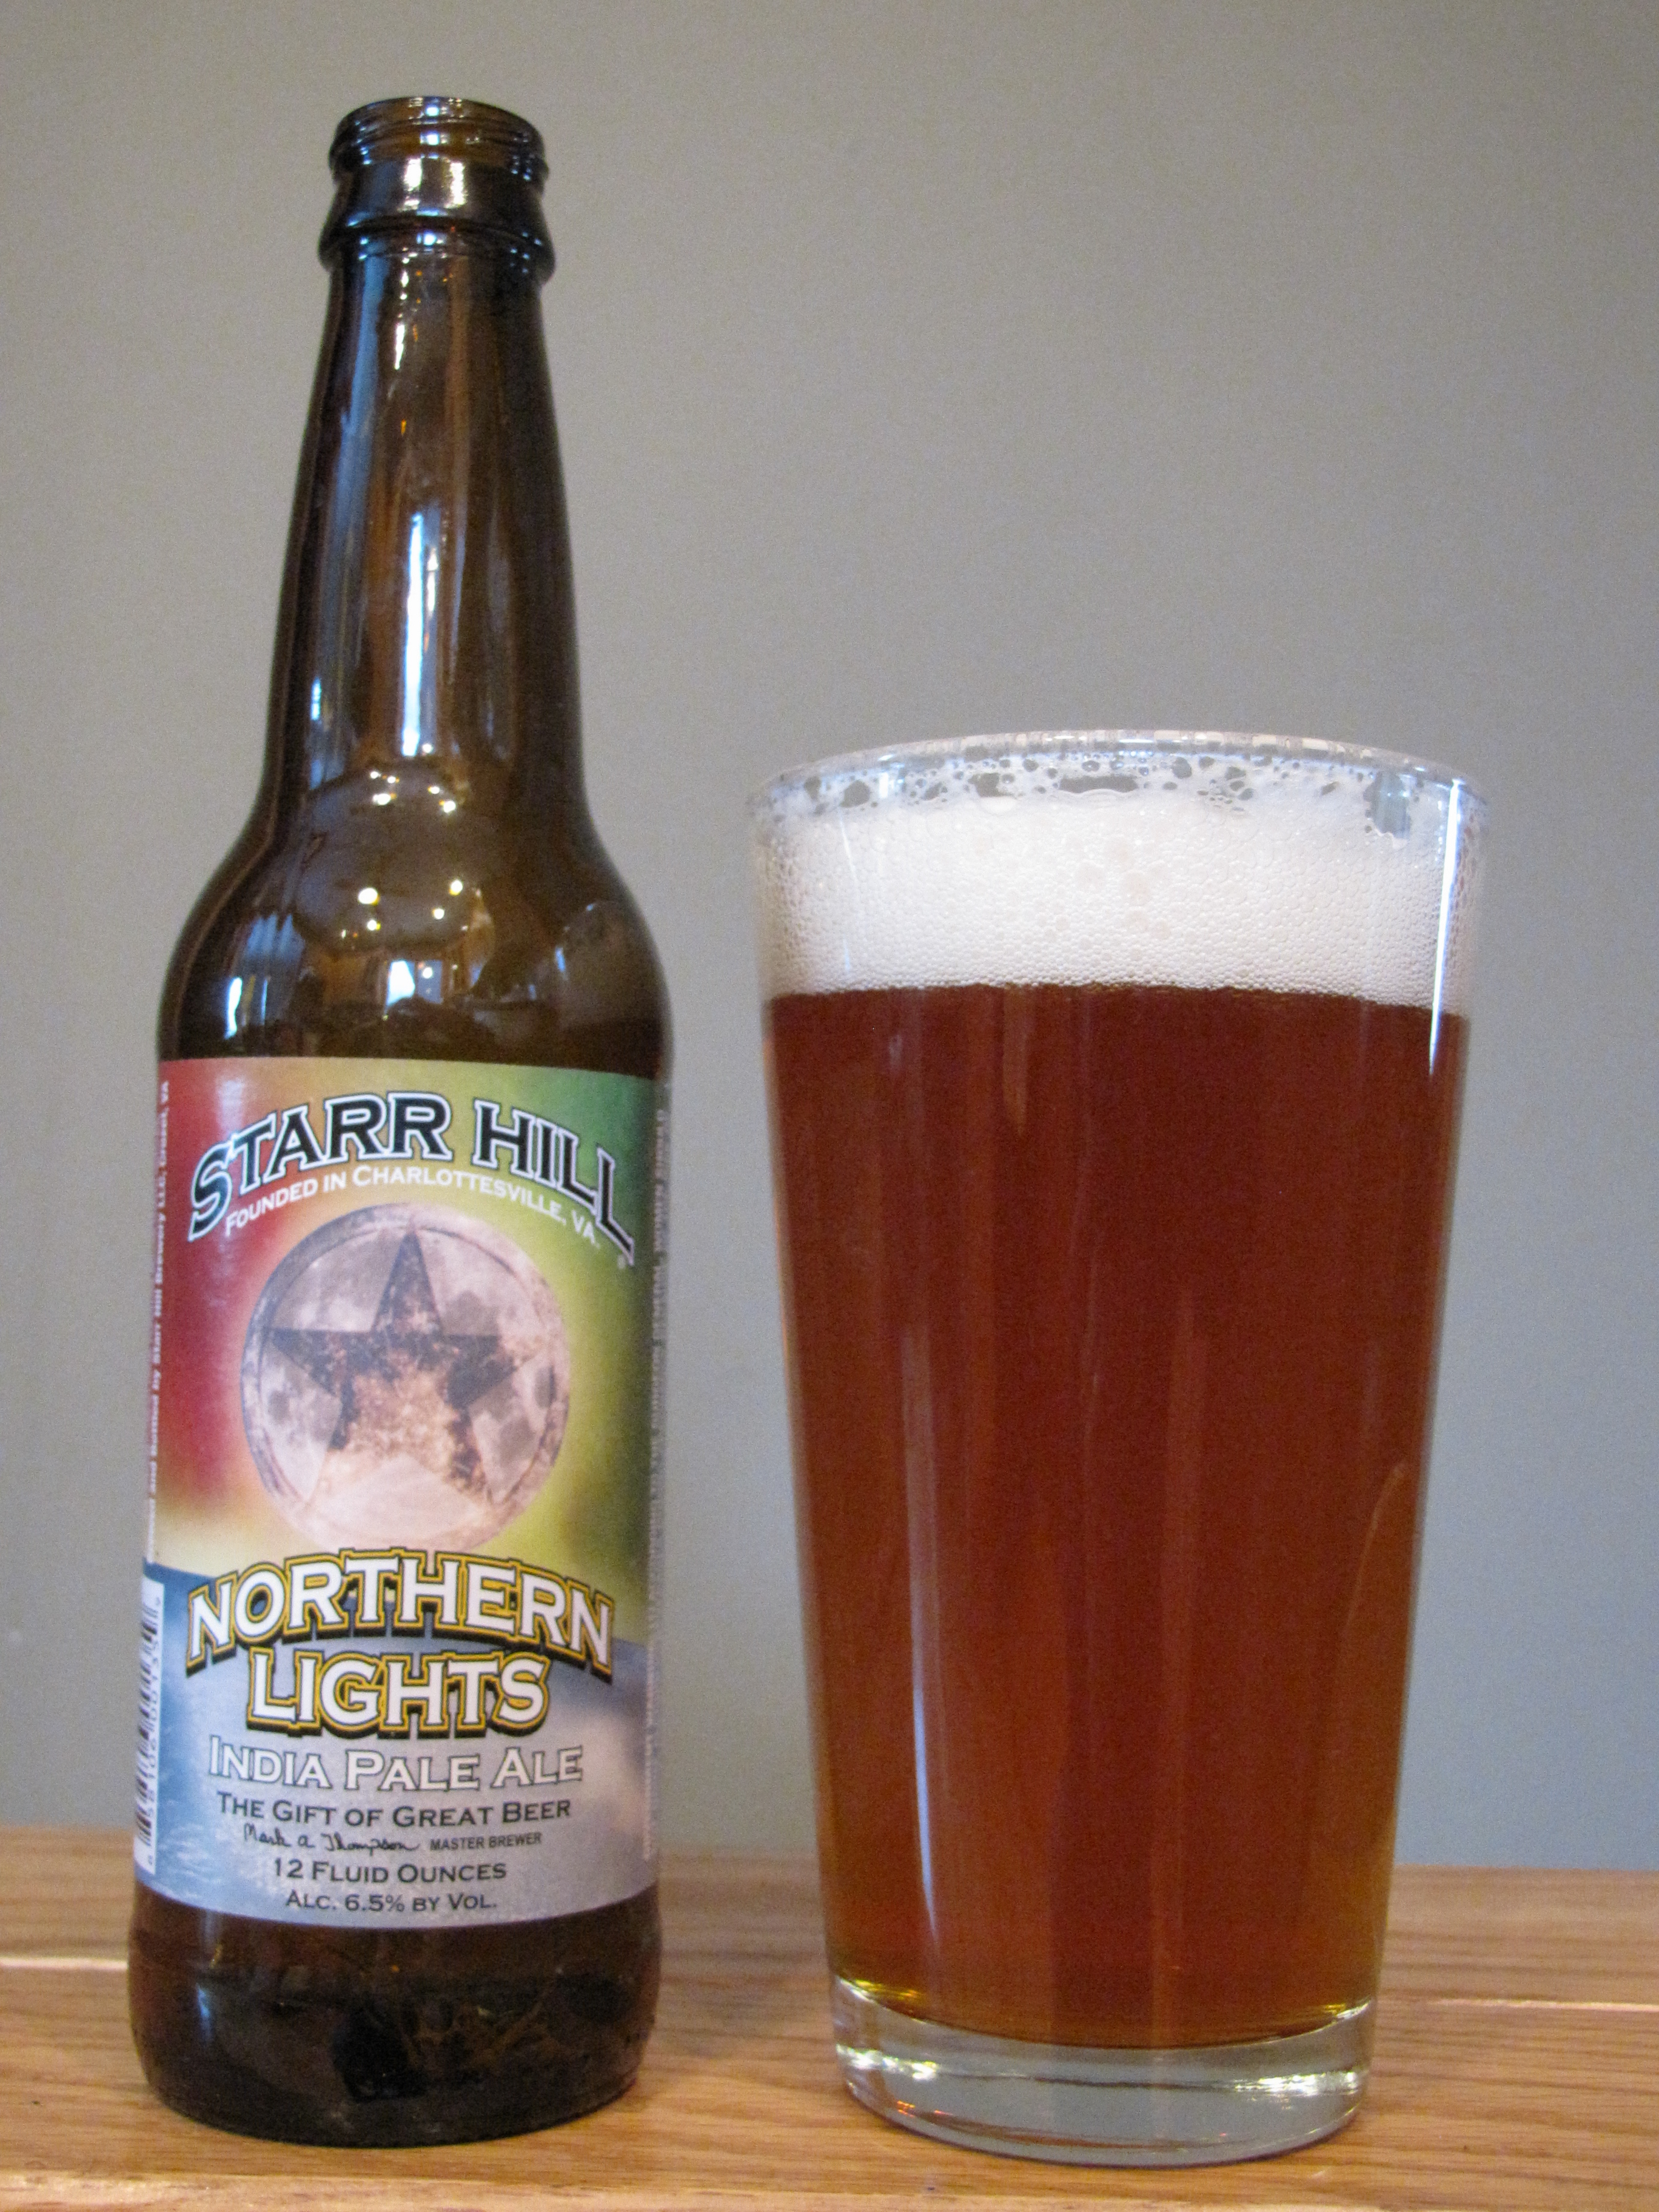 Starr Hill Northern Lights IPA